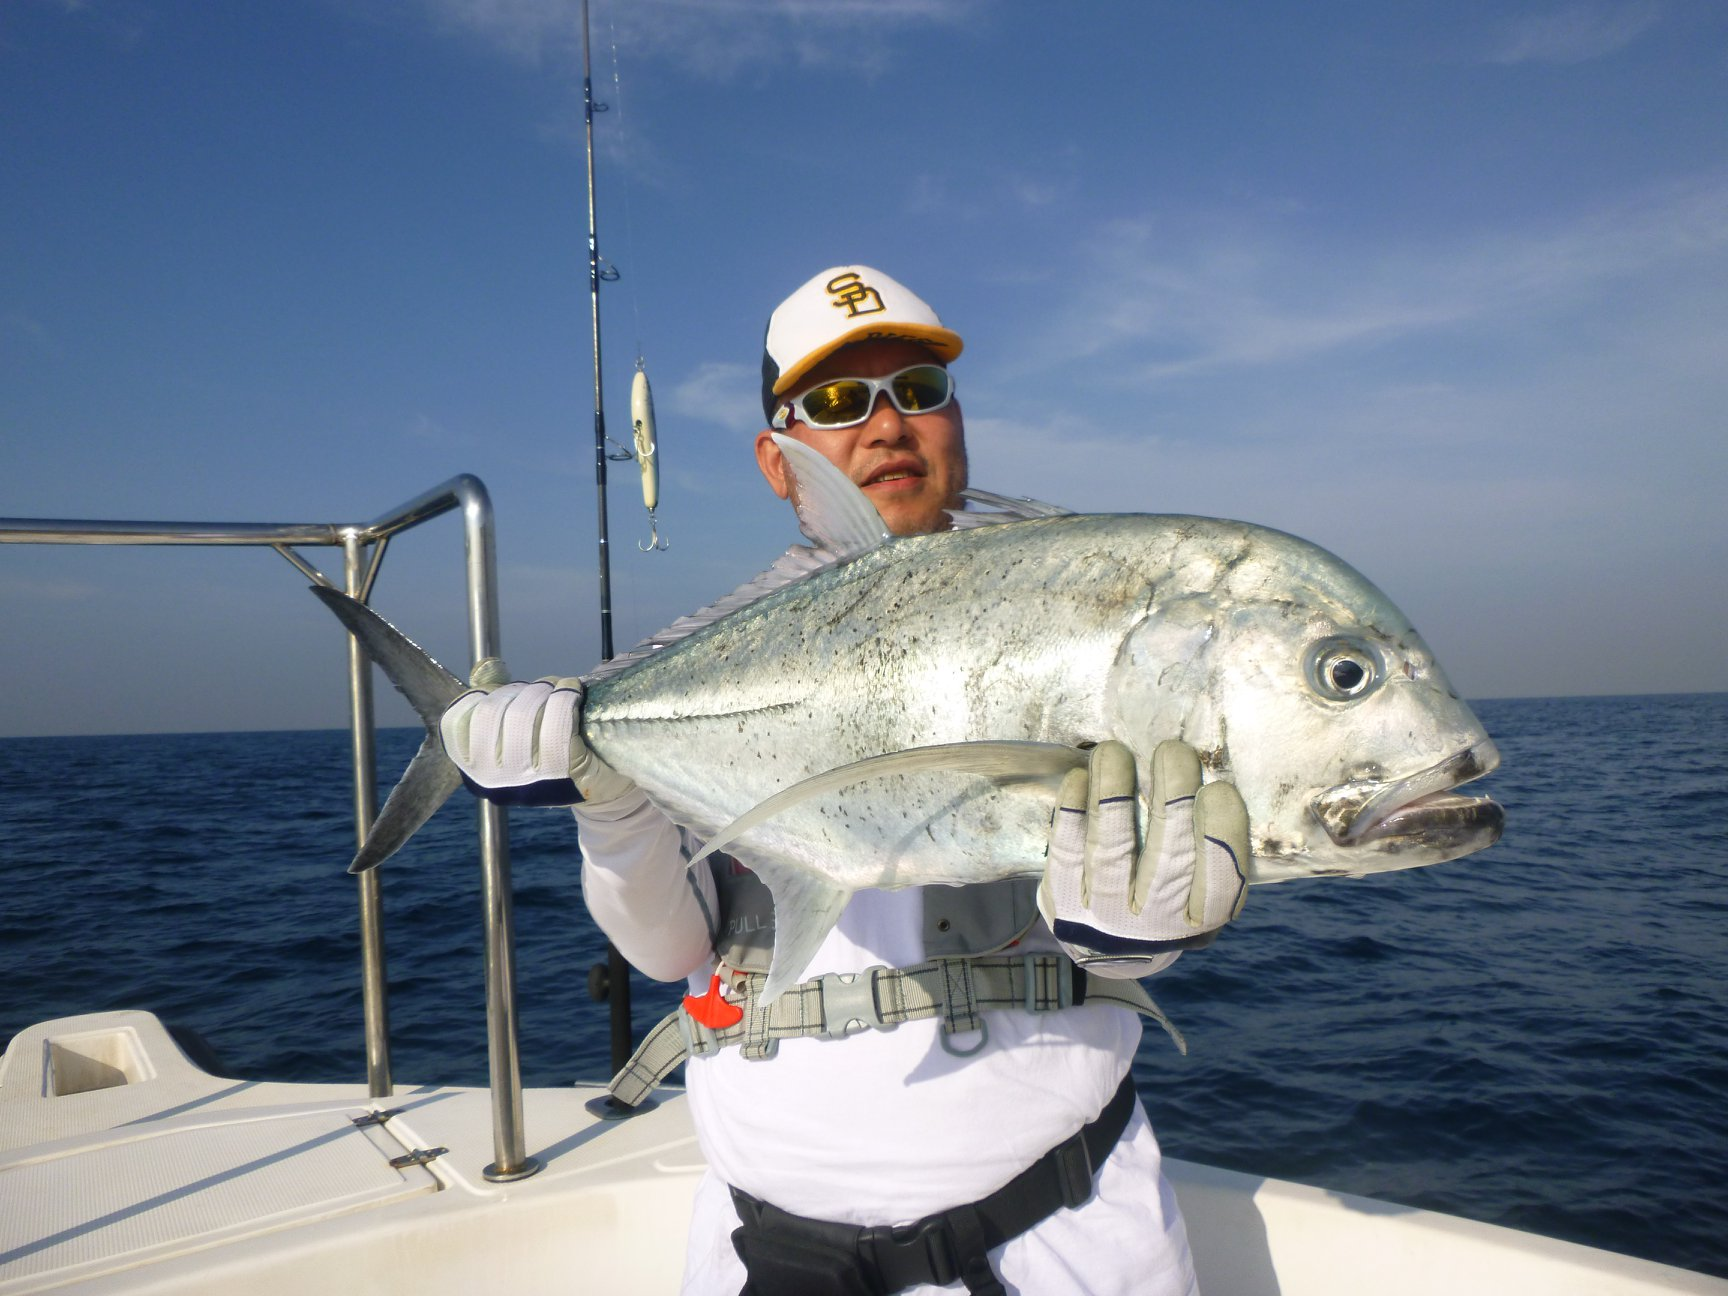 Gt Fishing Saltwater Sri Lanka.jpg